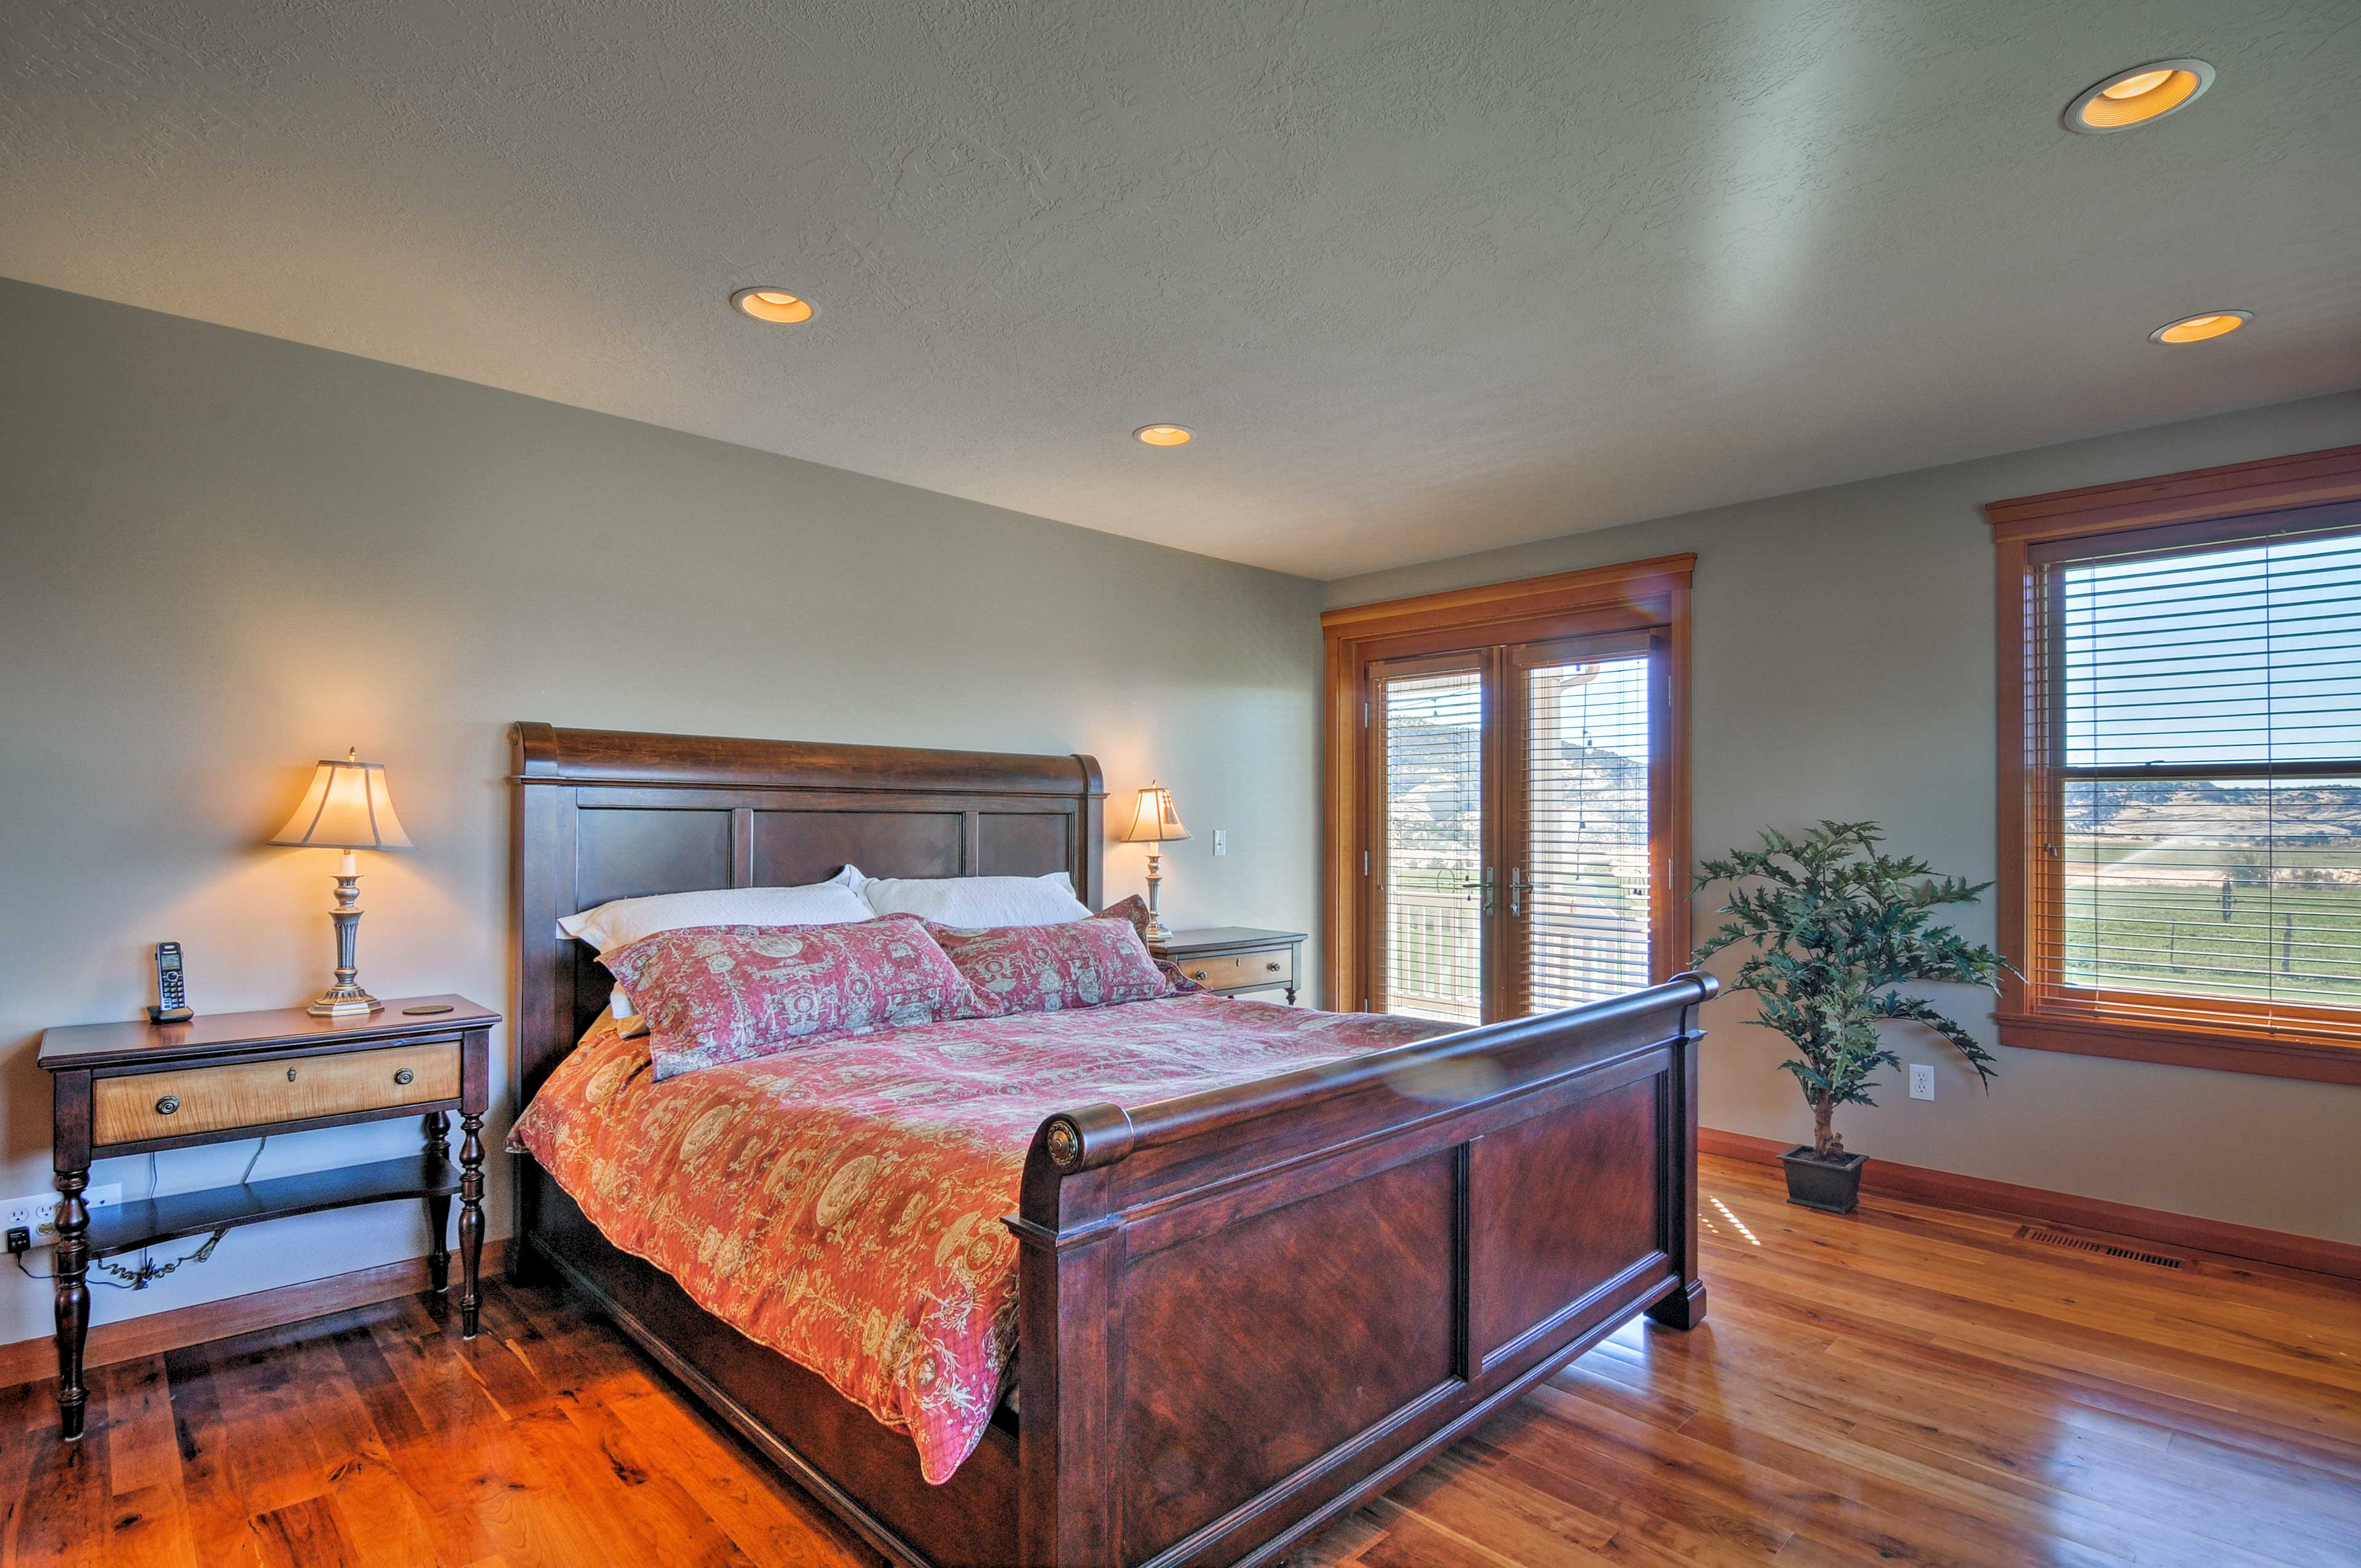 The master bedrooms sits on the ground floor & includes access to the porch.